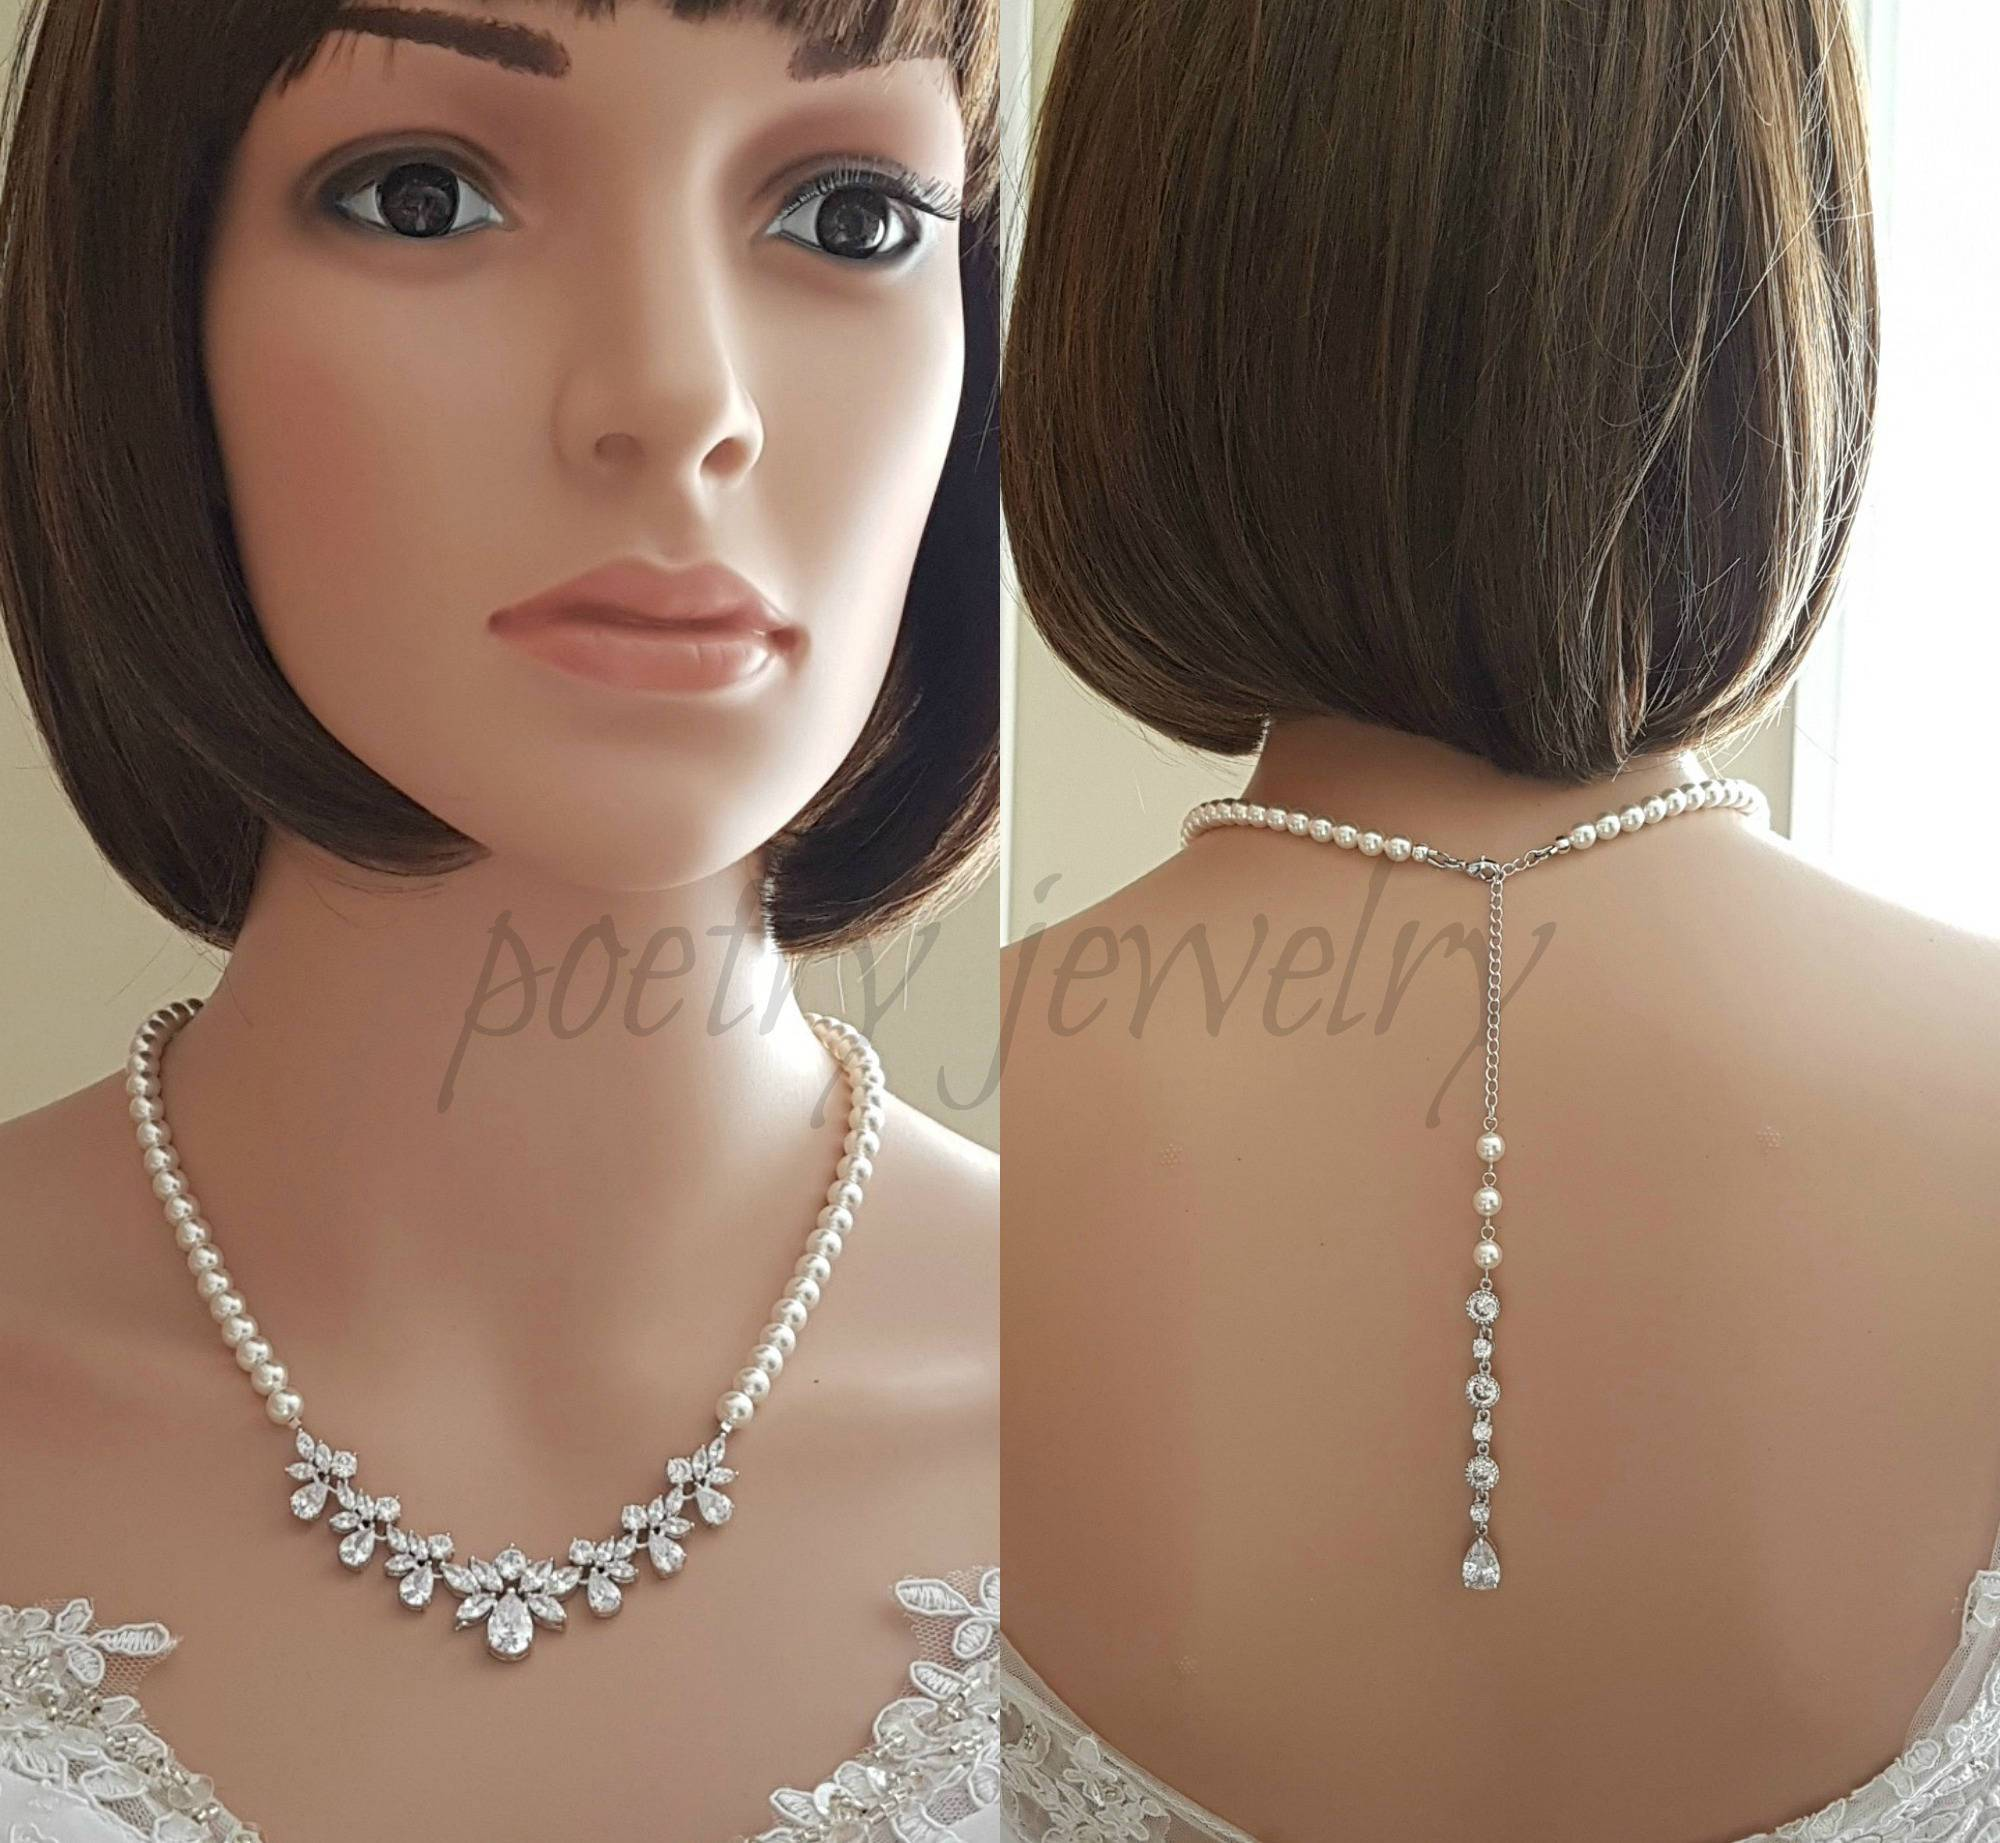 Back Bridal Necklace, Crystal and Pearl Wedding Necklace, Wedding Back Necklace, Necklace with Backdrop, Back Bridal Jewelry, Nicole - PoetryDesigns